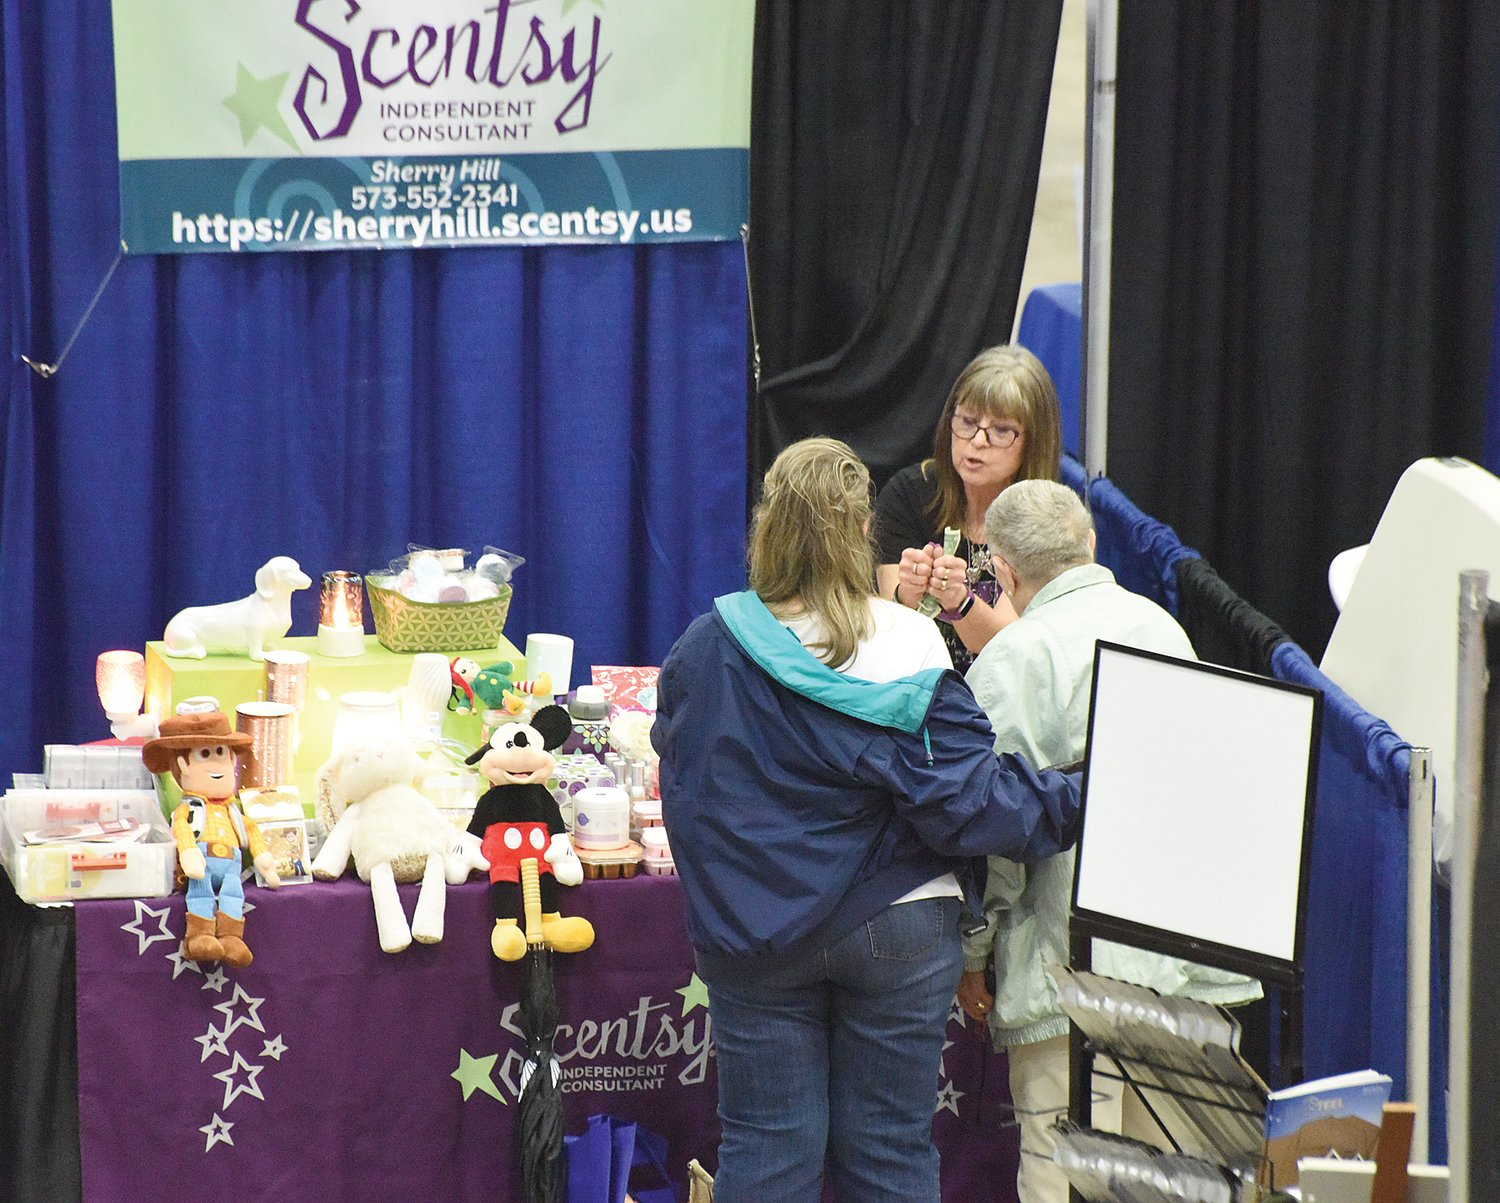 Sherry Hill, center, of Camdenton, talks with customers at her Scentsy booth Saturday at the Home and Garden Show. Hill said she thought the show would do well and bring out a lot of people because last year the event didn't happen due to the pandemic.